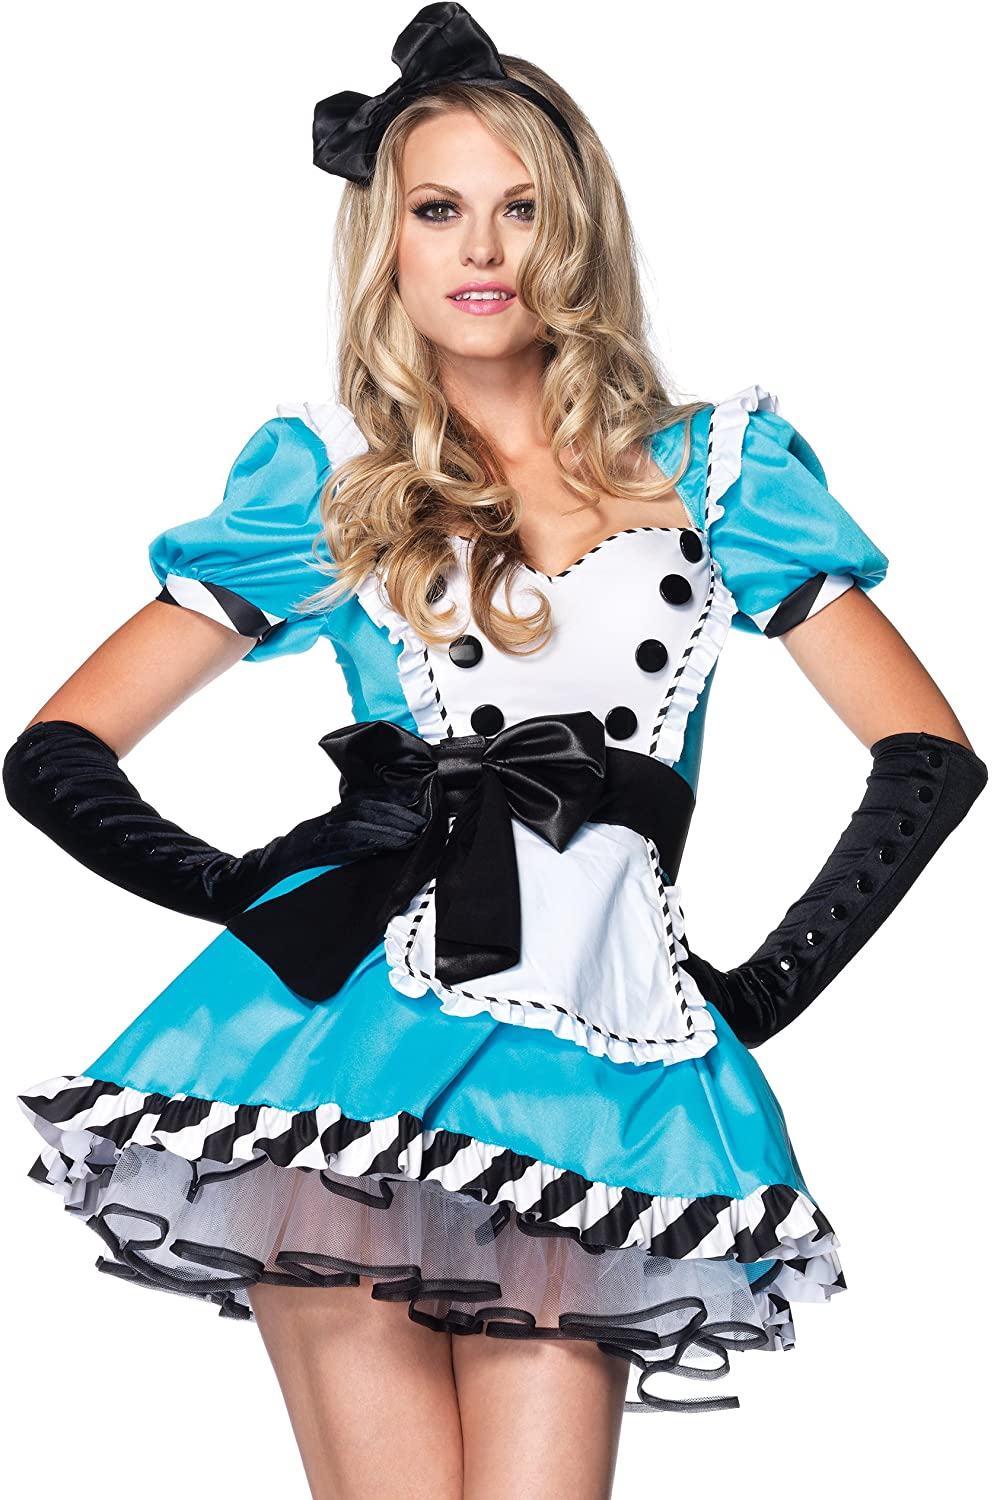 Charming Alice 2 piece costume includes ruffle trimmed apron dress with large bow accent and matching bow headband